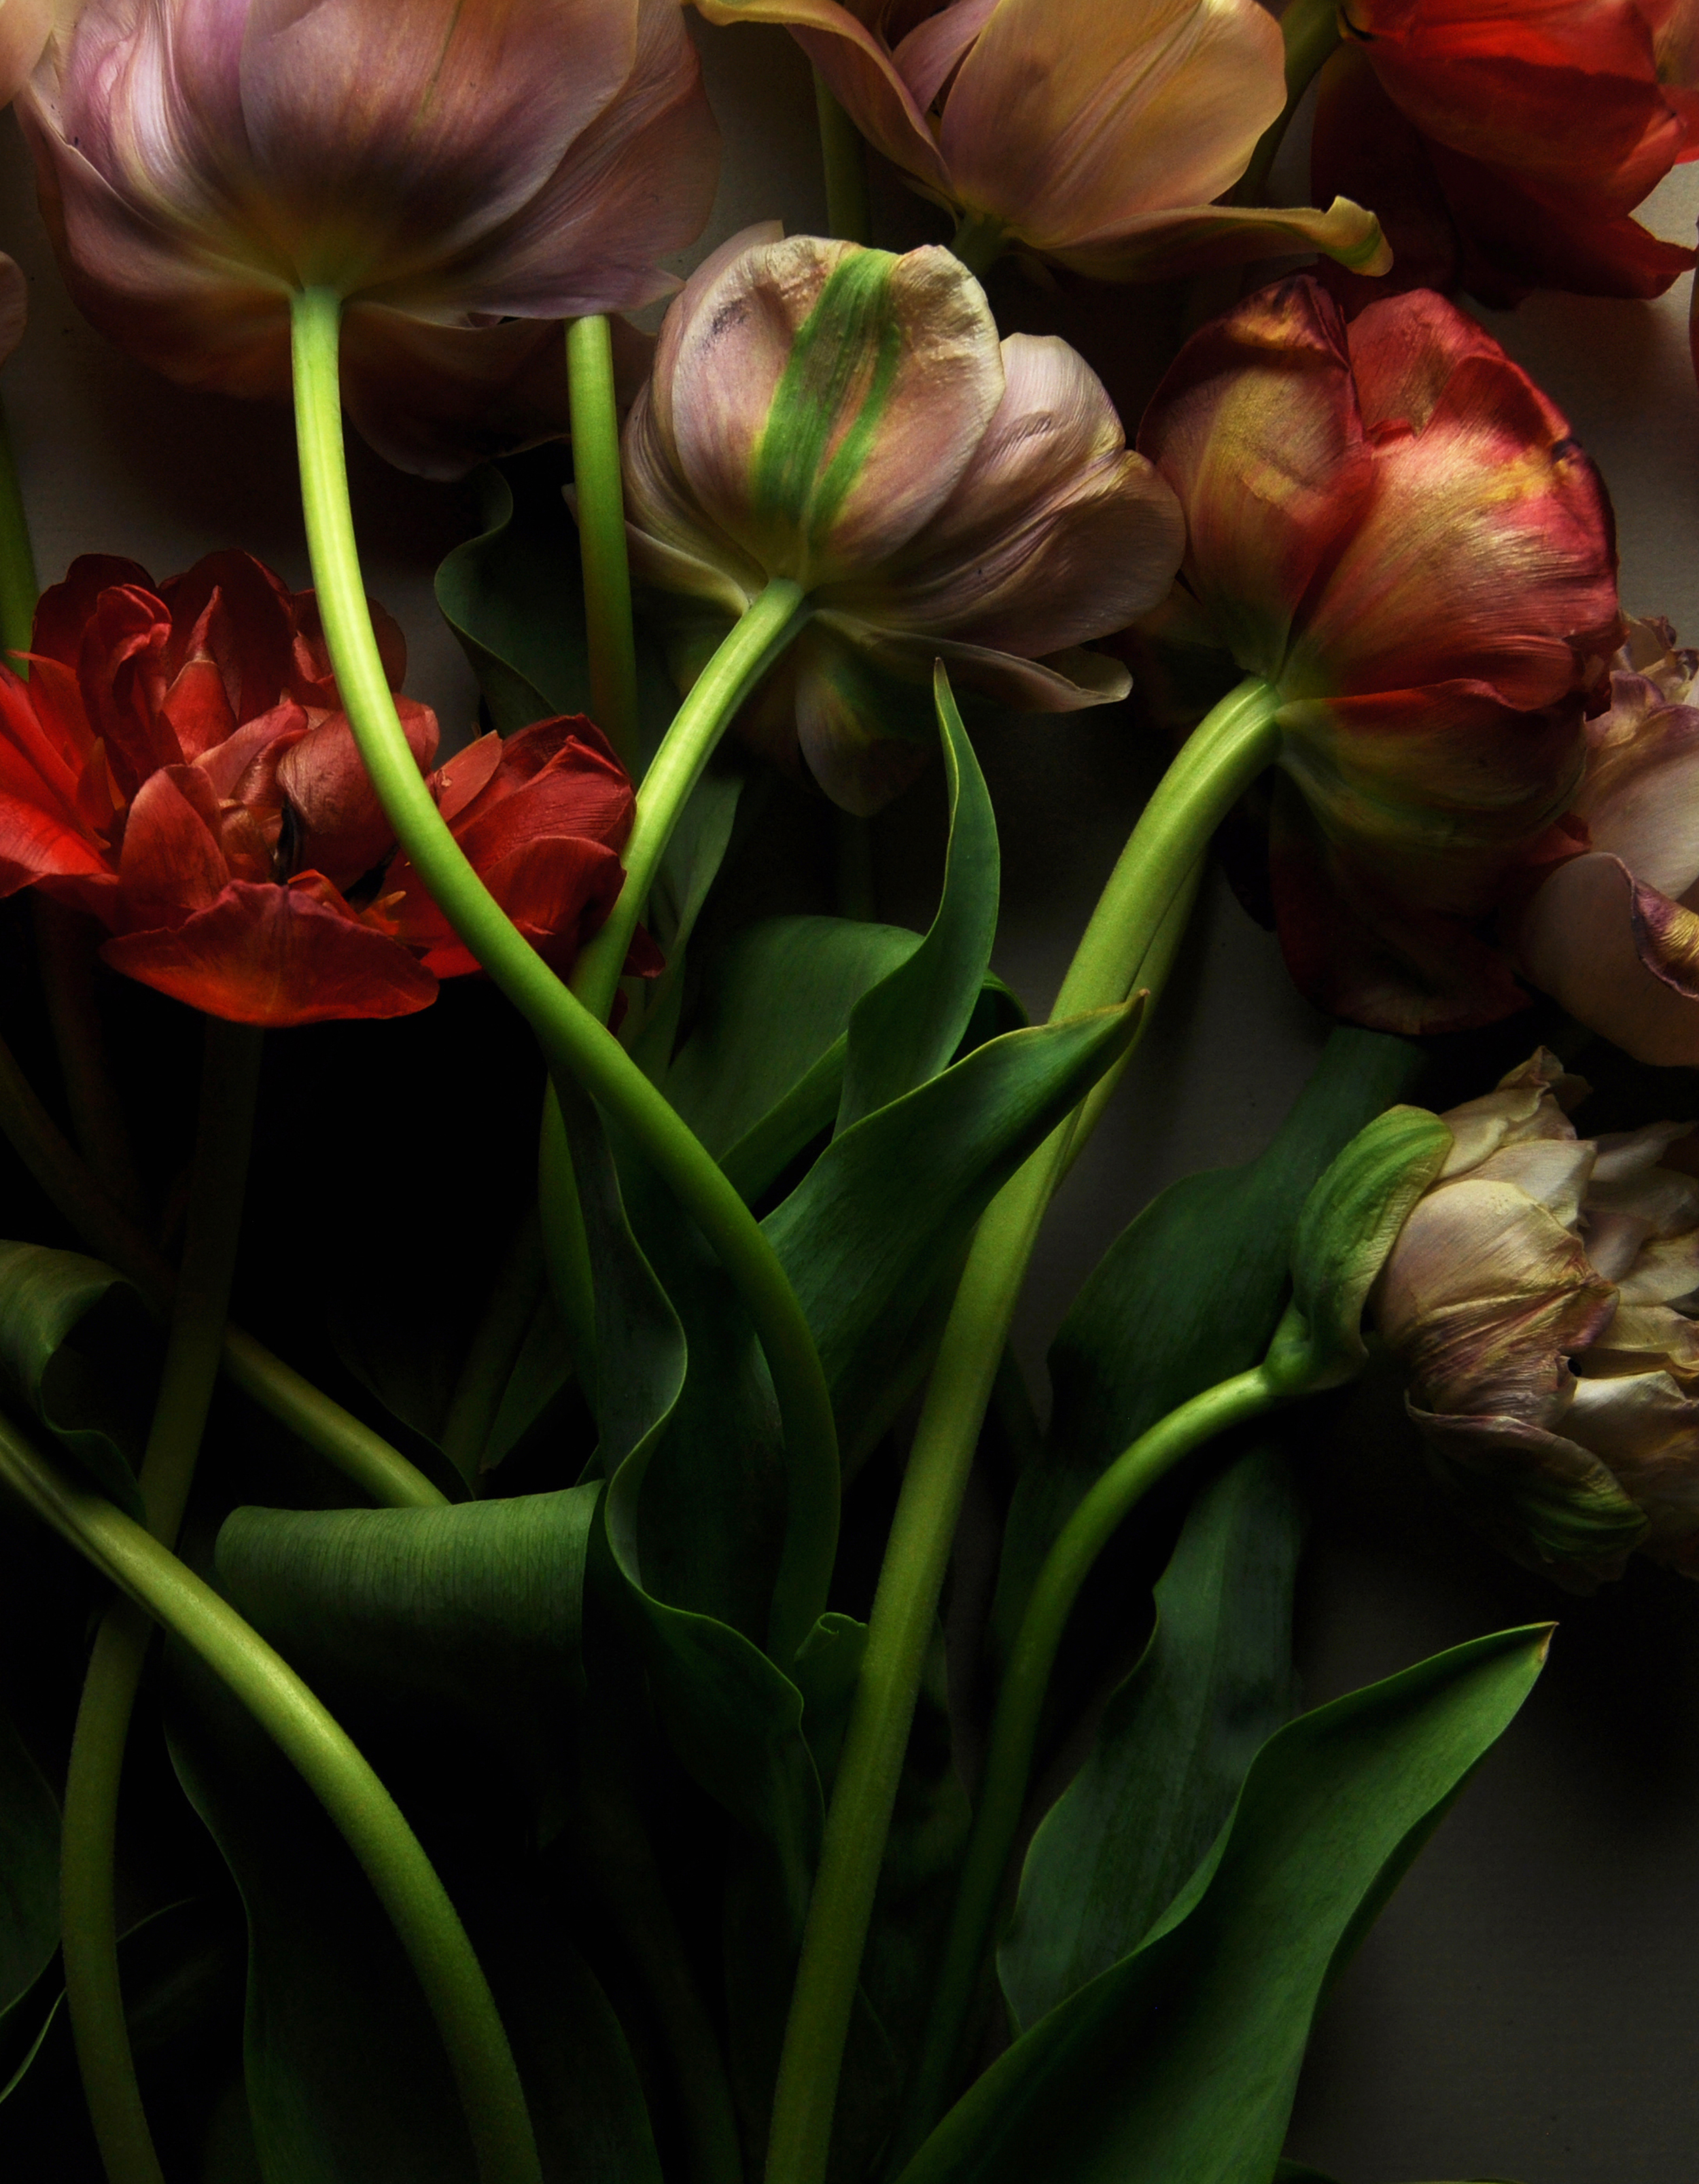 Belle Epoque and Red Tulips No 1